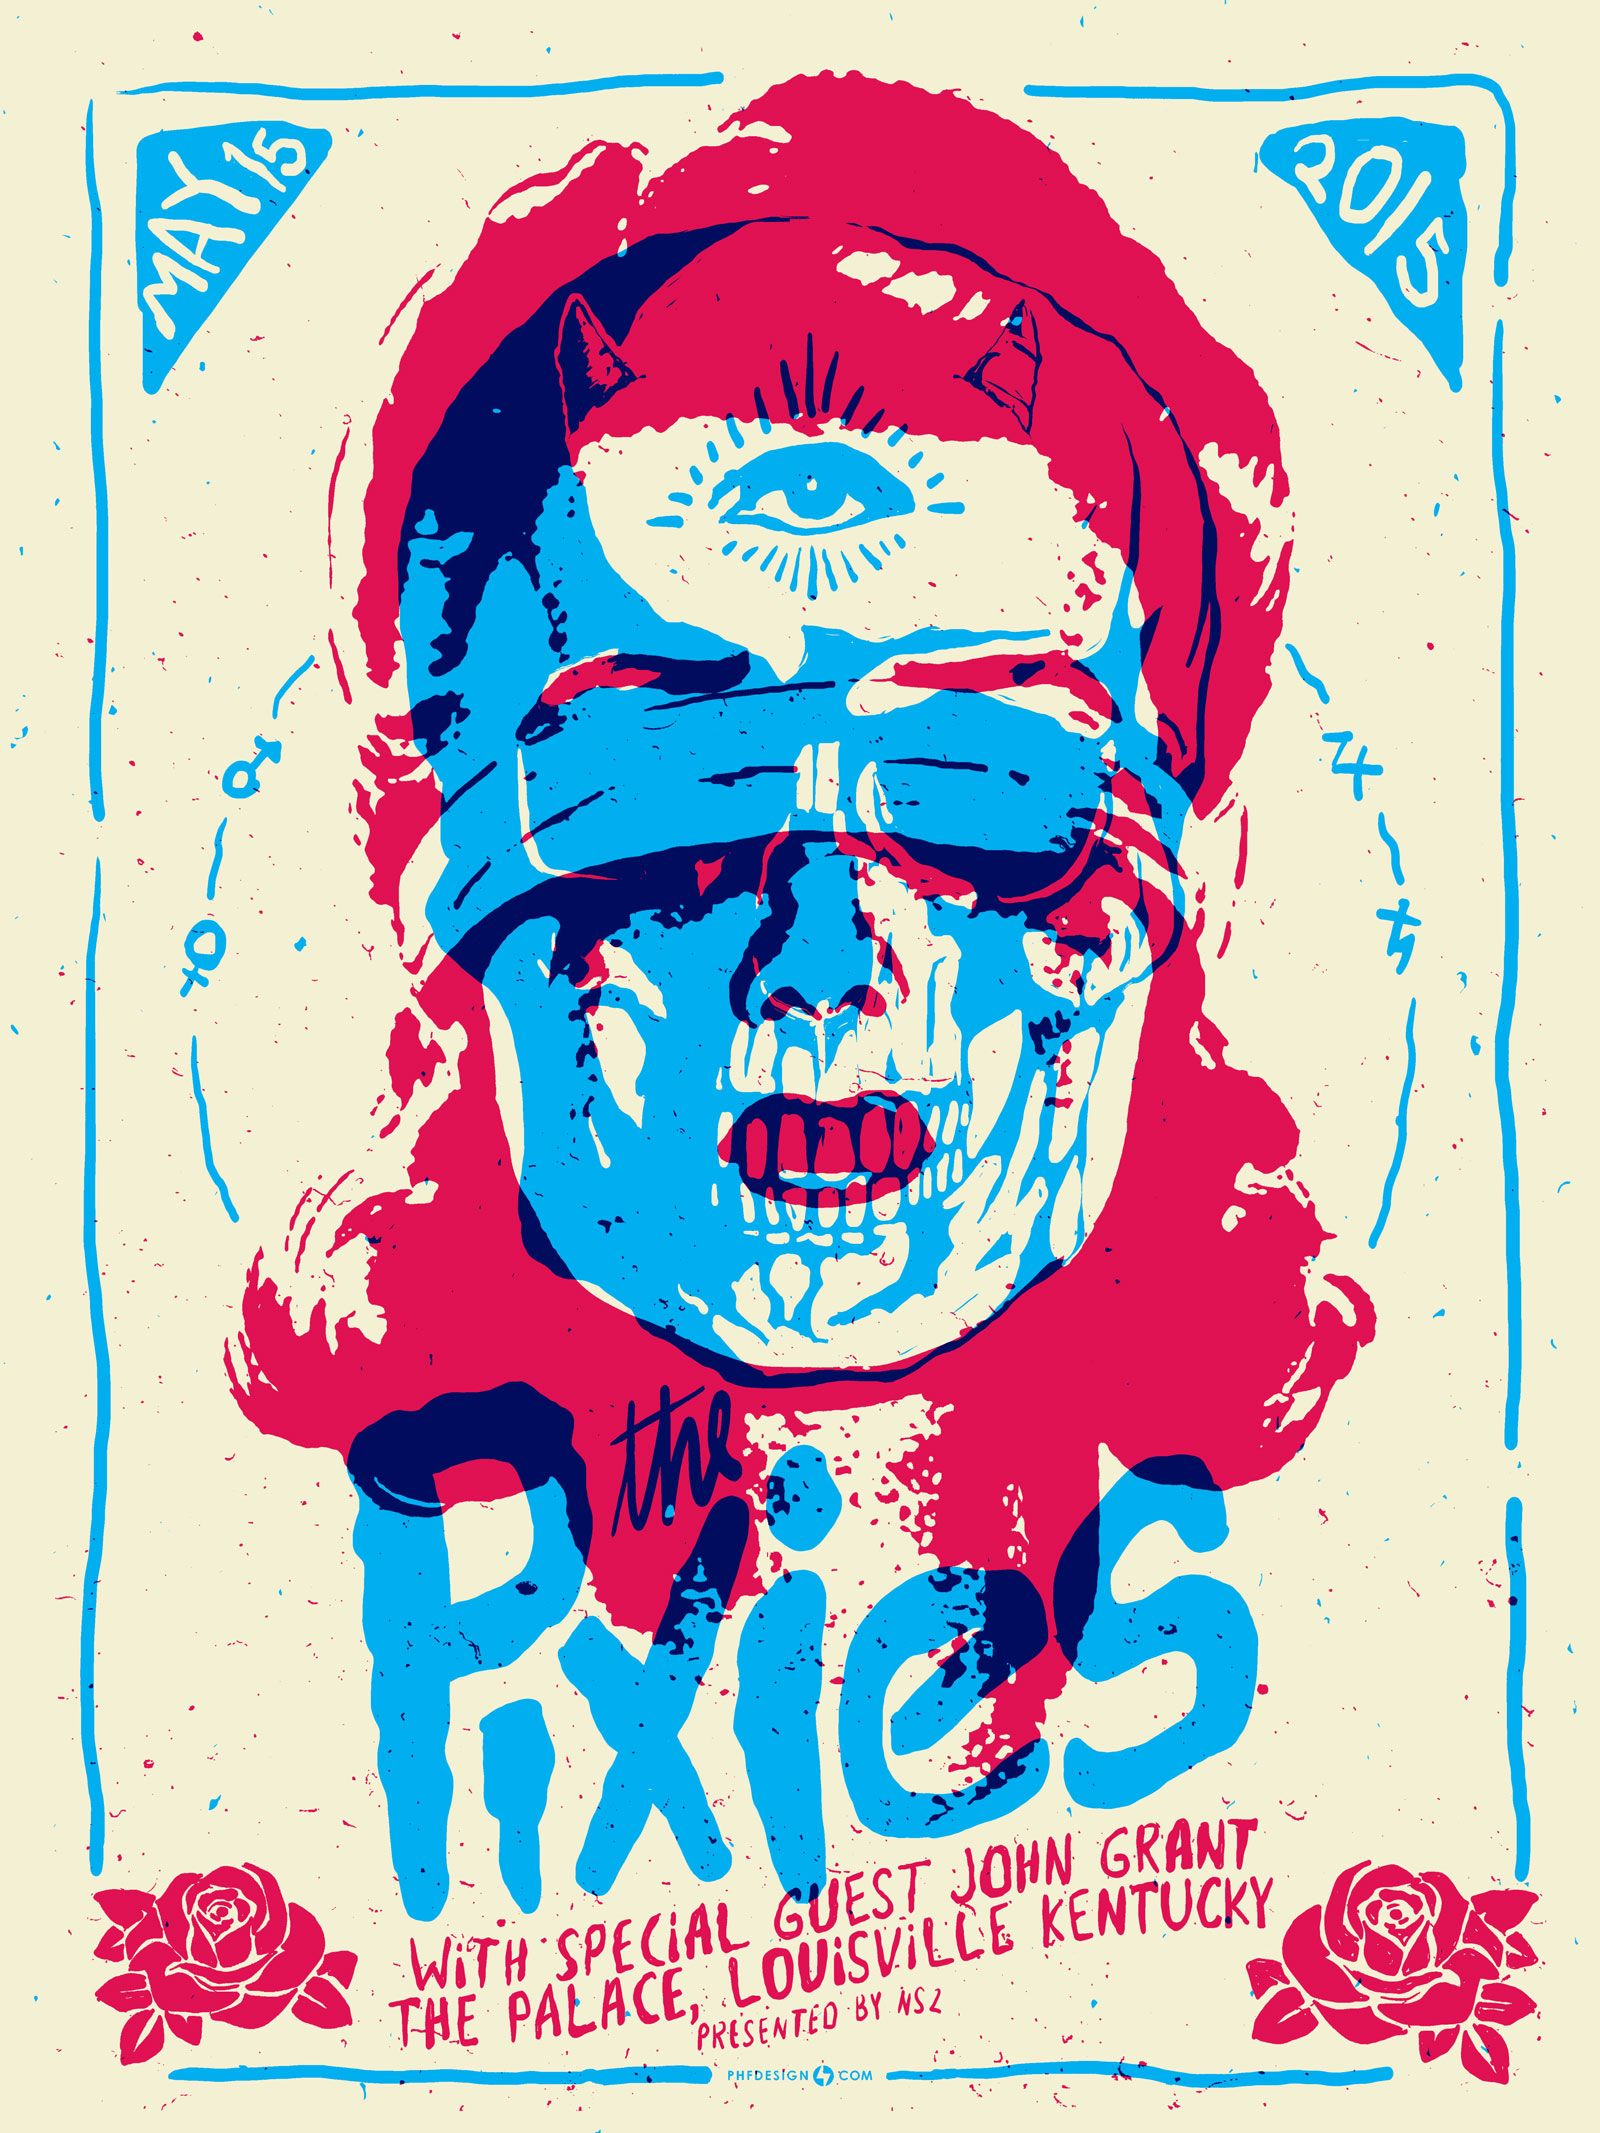 This 3 color poster was screen printed on heavy cream paper with acrylic inks for the